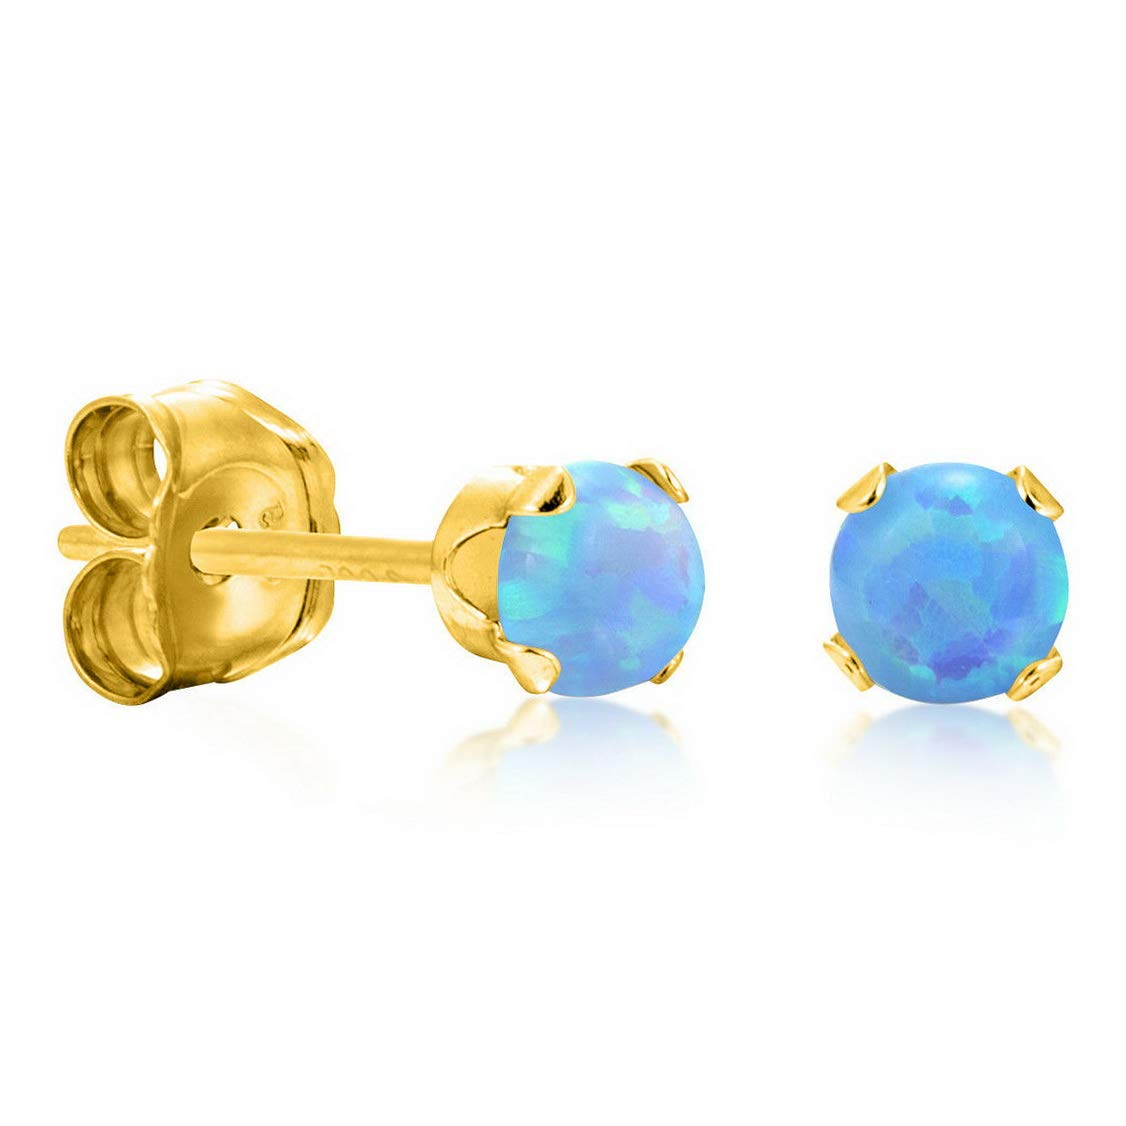 Campton Gold Plate Over Sterling Silver Simulated Round Blue Opal Stud Earrings 925 3mm Small Model ERRNGS 13447